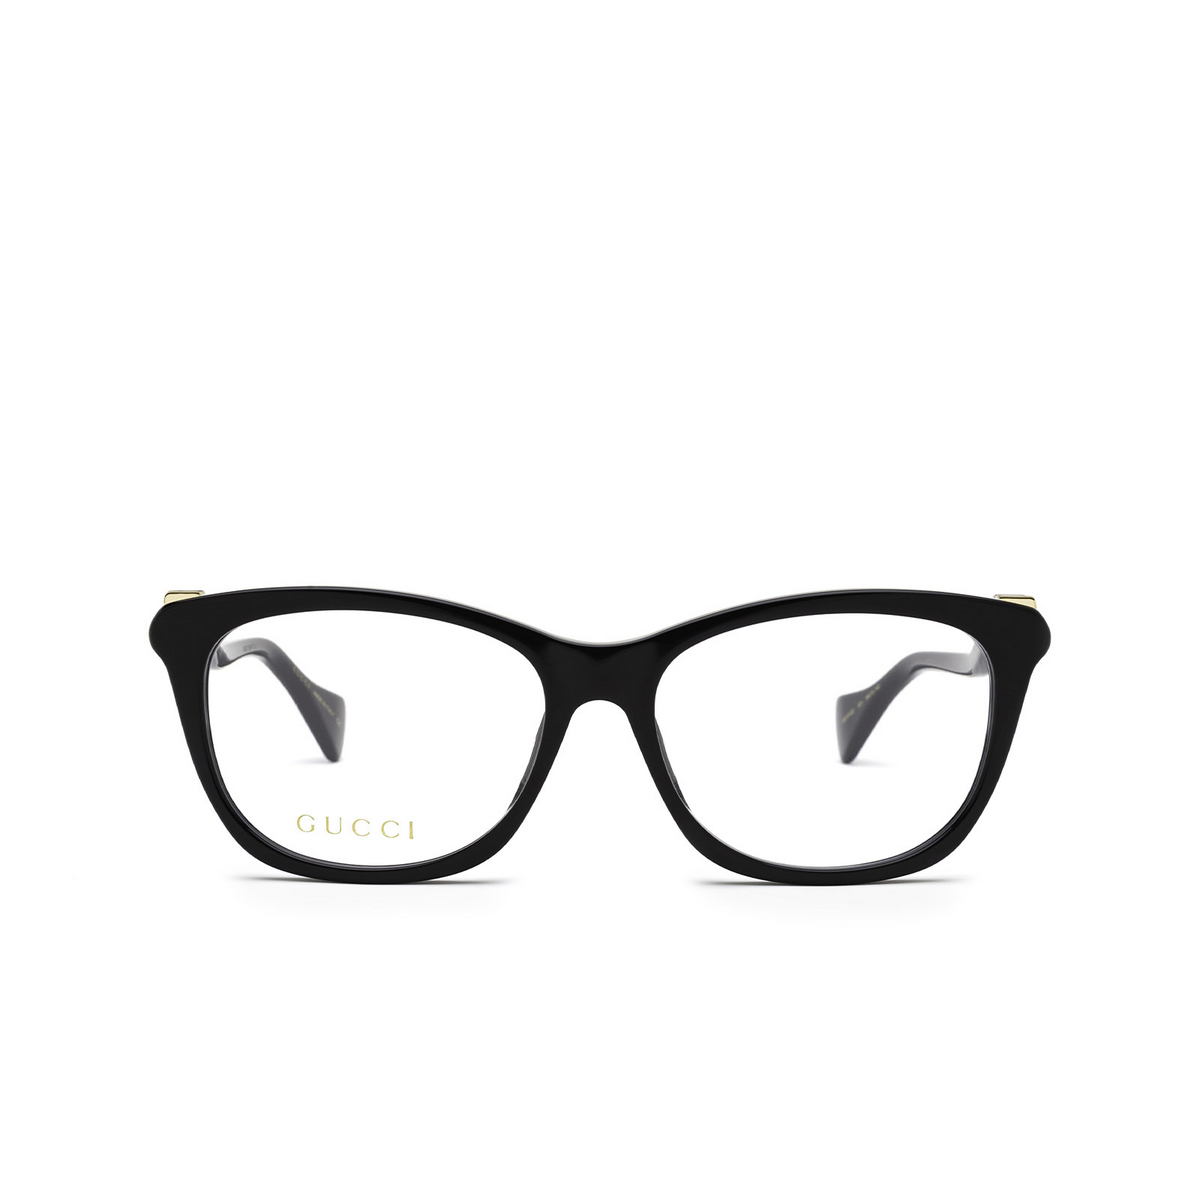 Gucci® Cat-eye Eyeglasses: GG1012O color Black 001 - front view.